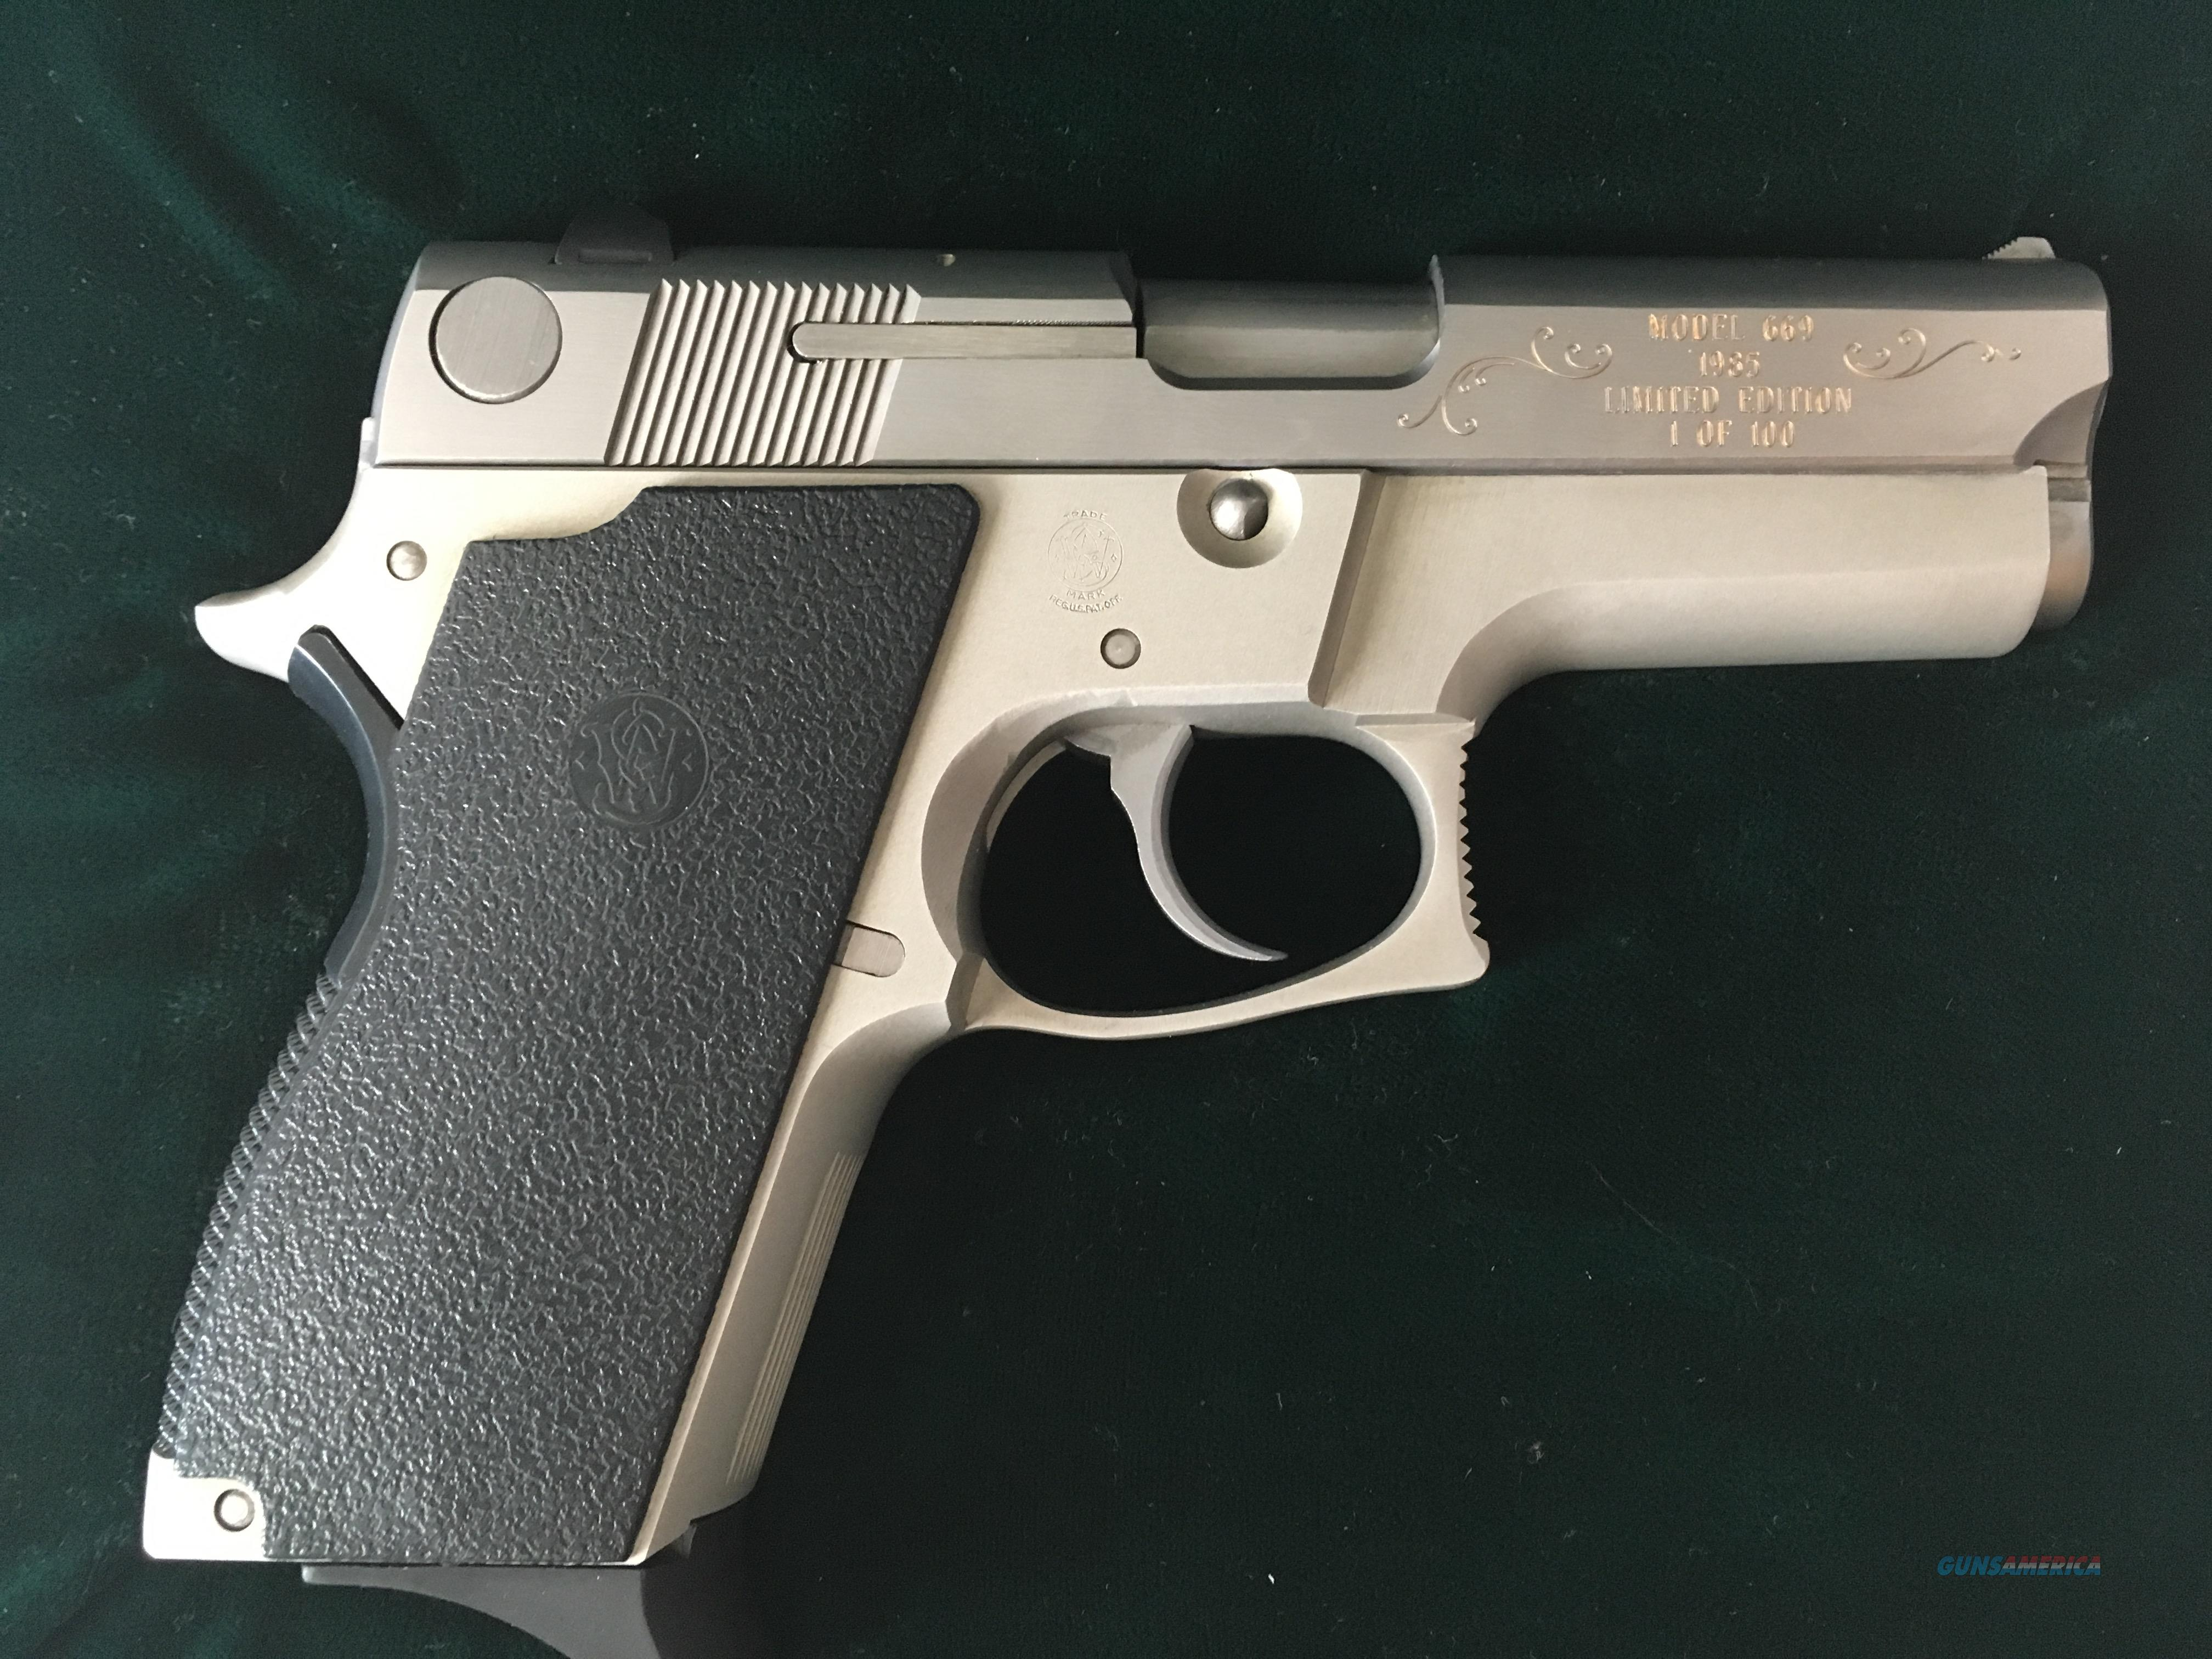 Smith & Wesson Model 669 9mm 1 of 100  Guns > Pistols > Smith & Wesson Pistols - Autos > Steel Frame